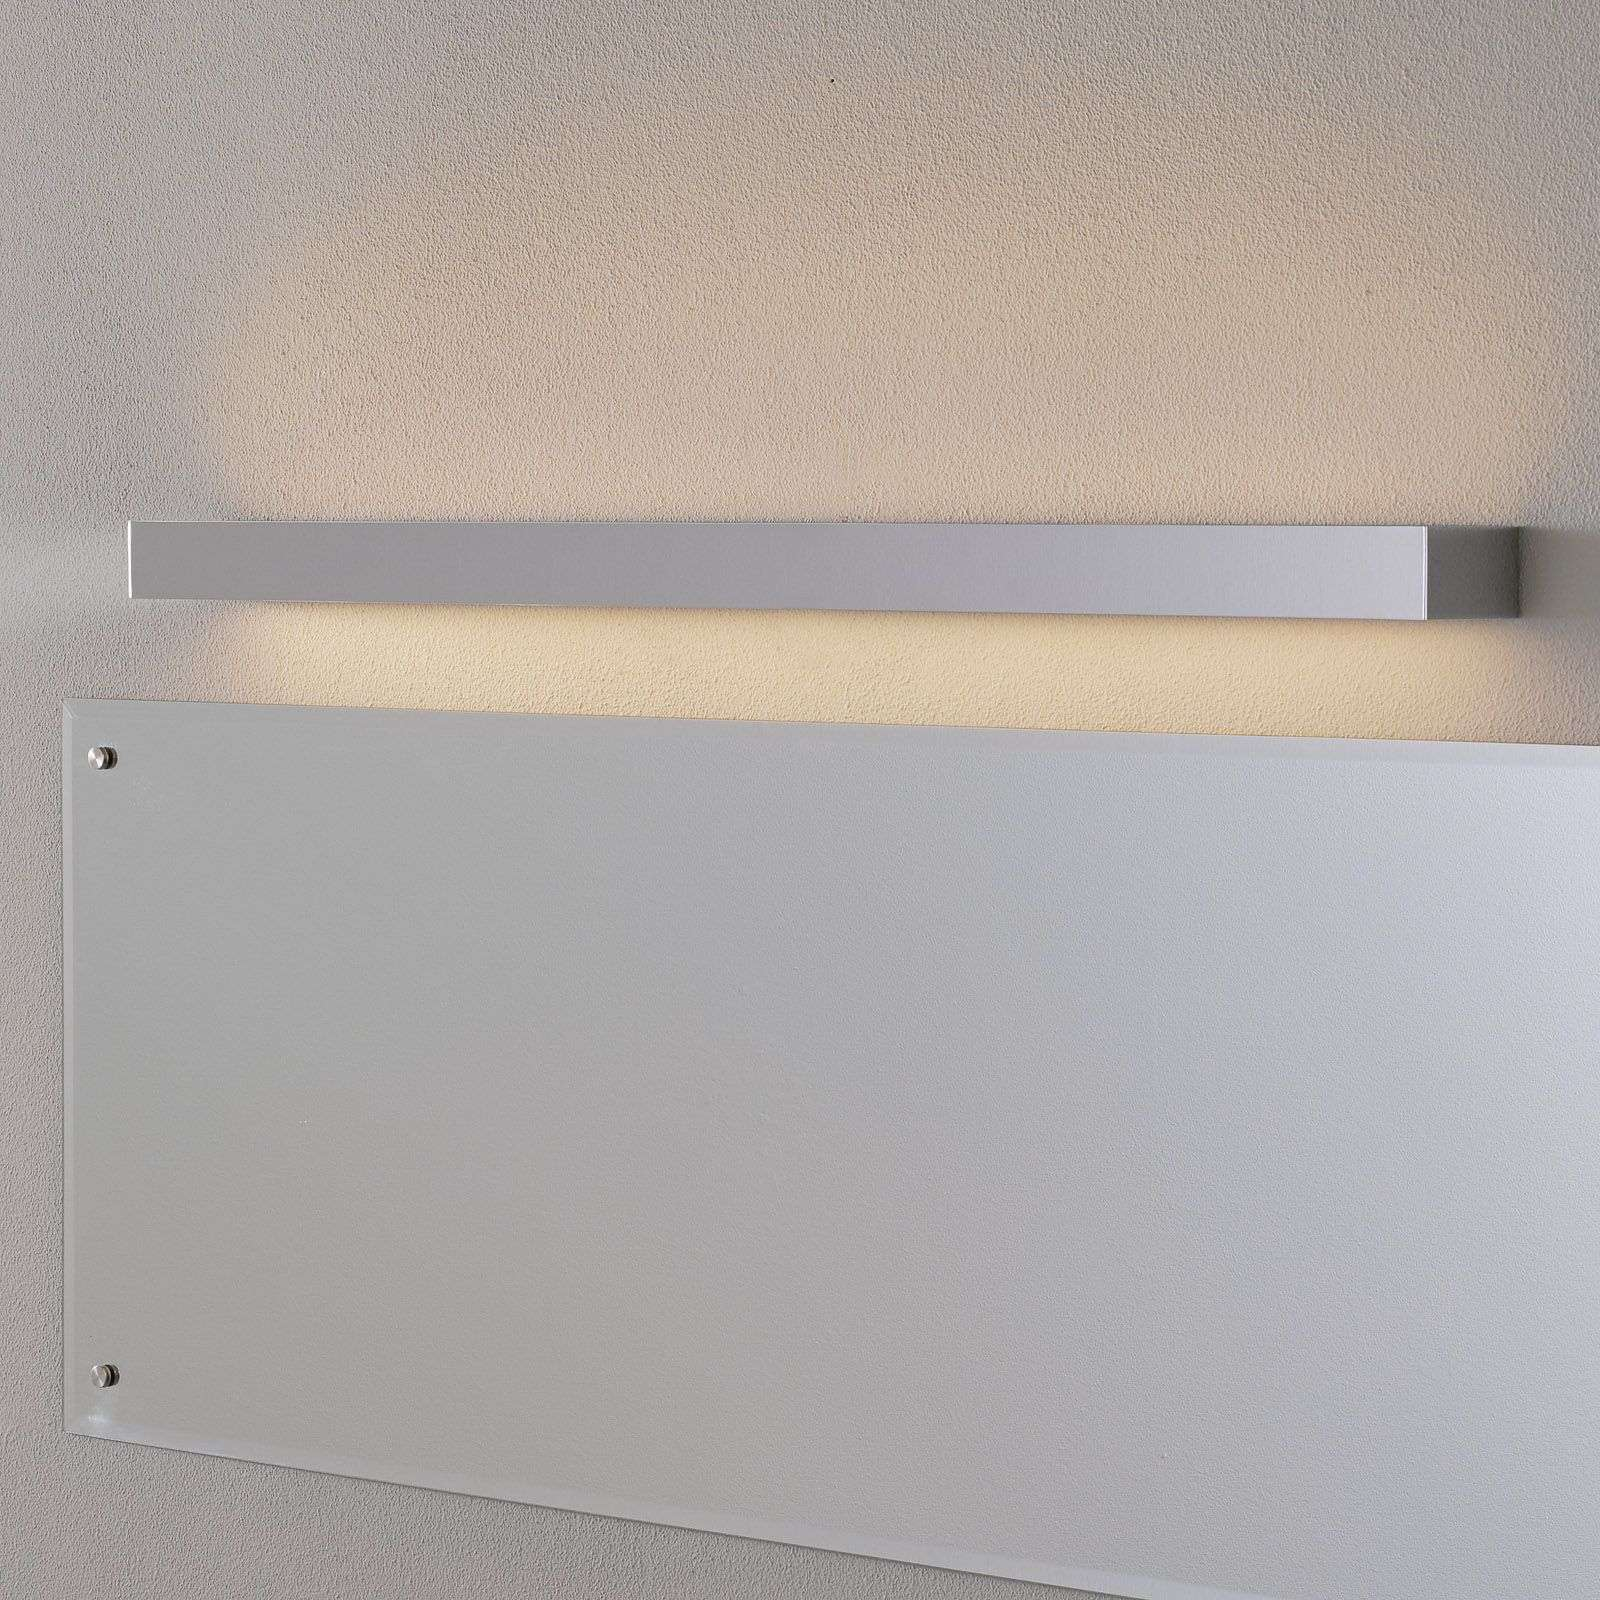 Helestra Theia applique miroir LED, chromé, 90 cm